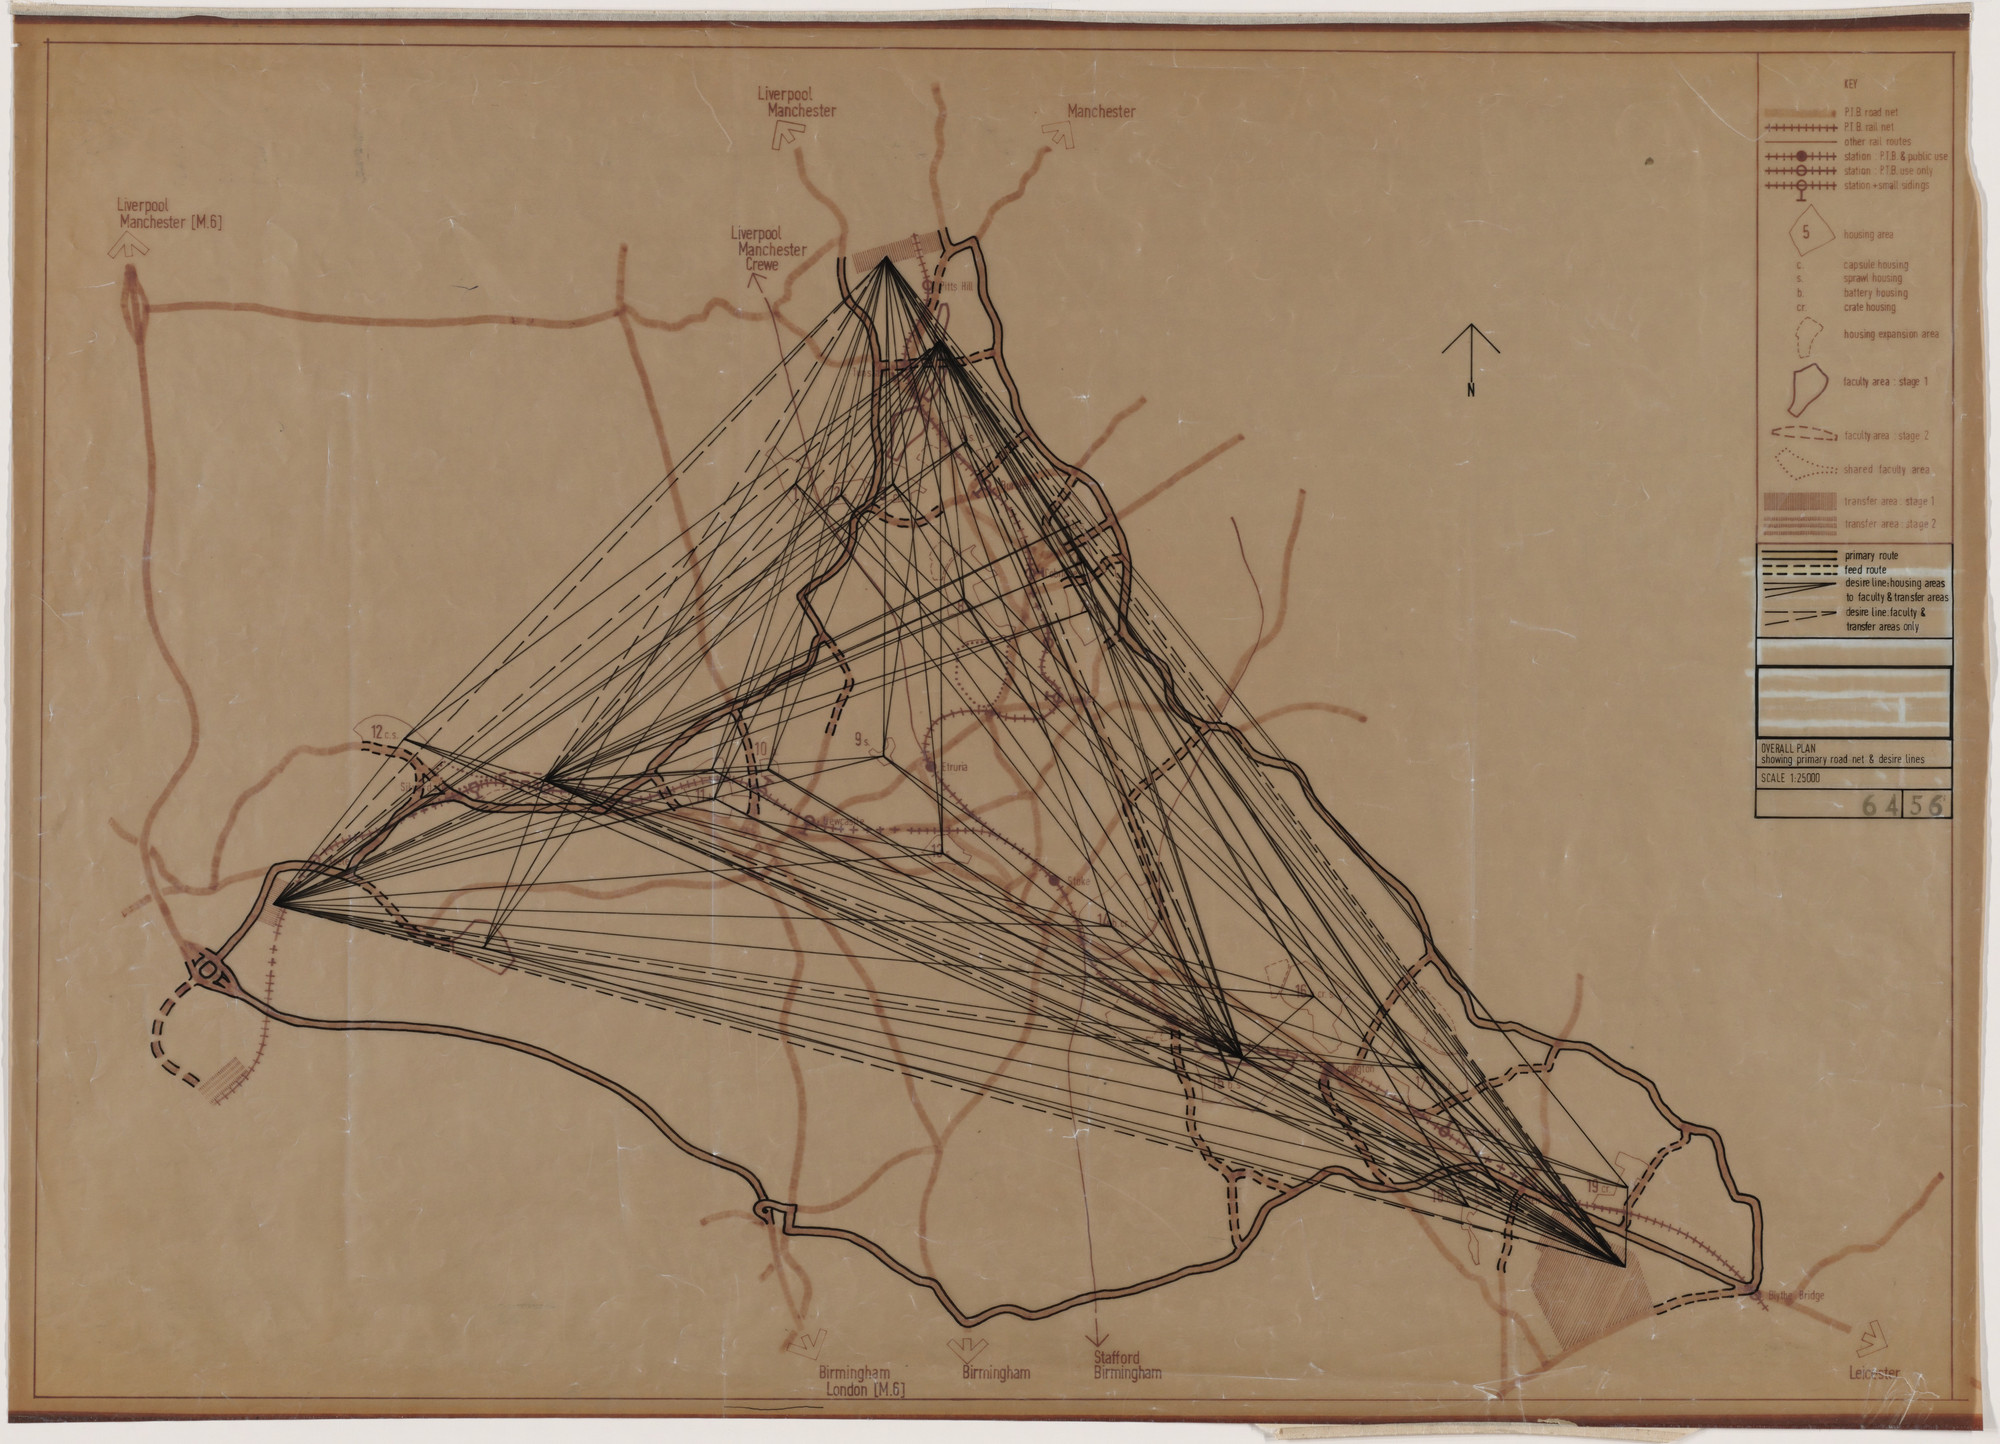 Cedric Price. Potteries Thinkbelt Project, Staffordshire, England (Plan of Desire Lines-Physical and Mental Exchange). 1964–1966